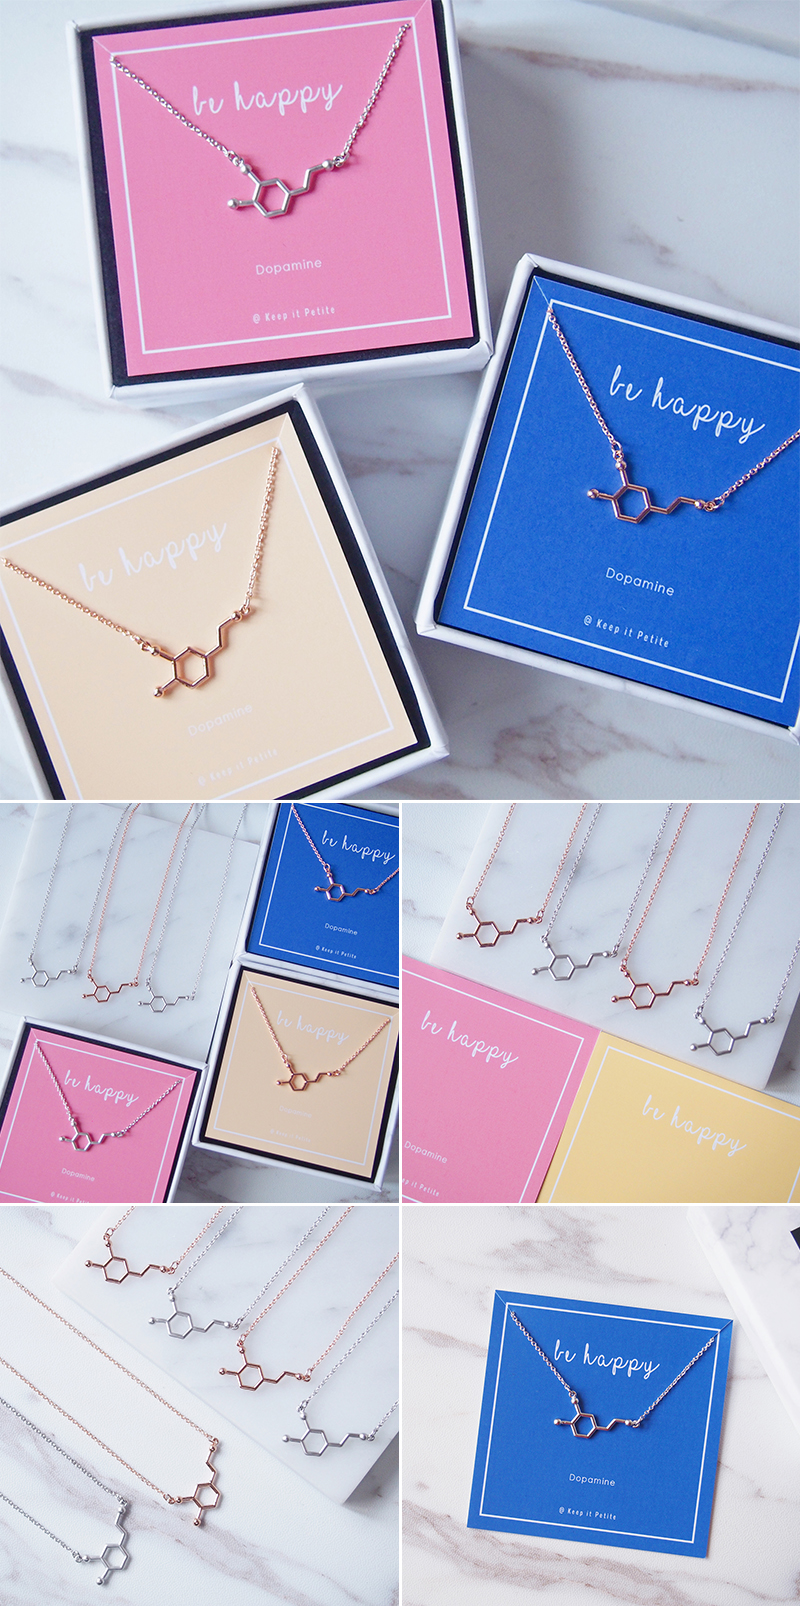 Dopamine Happiness Messenger Necklace